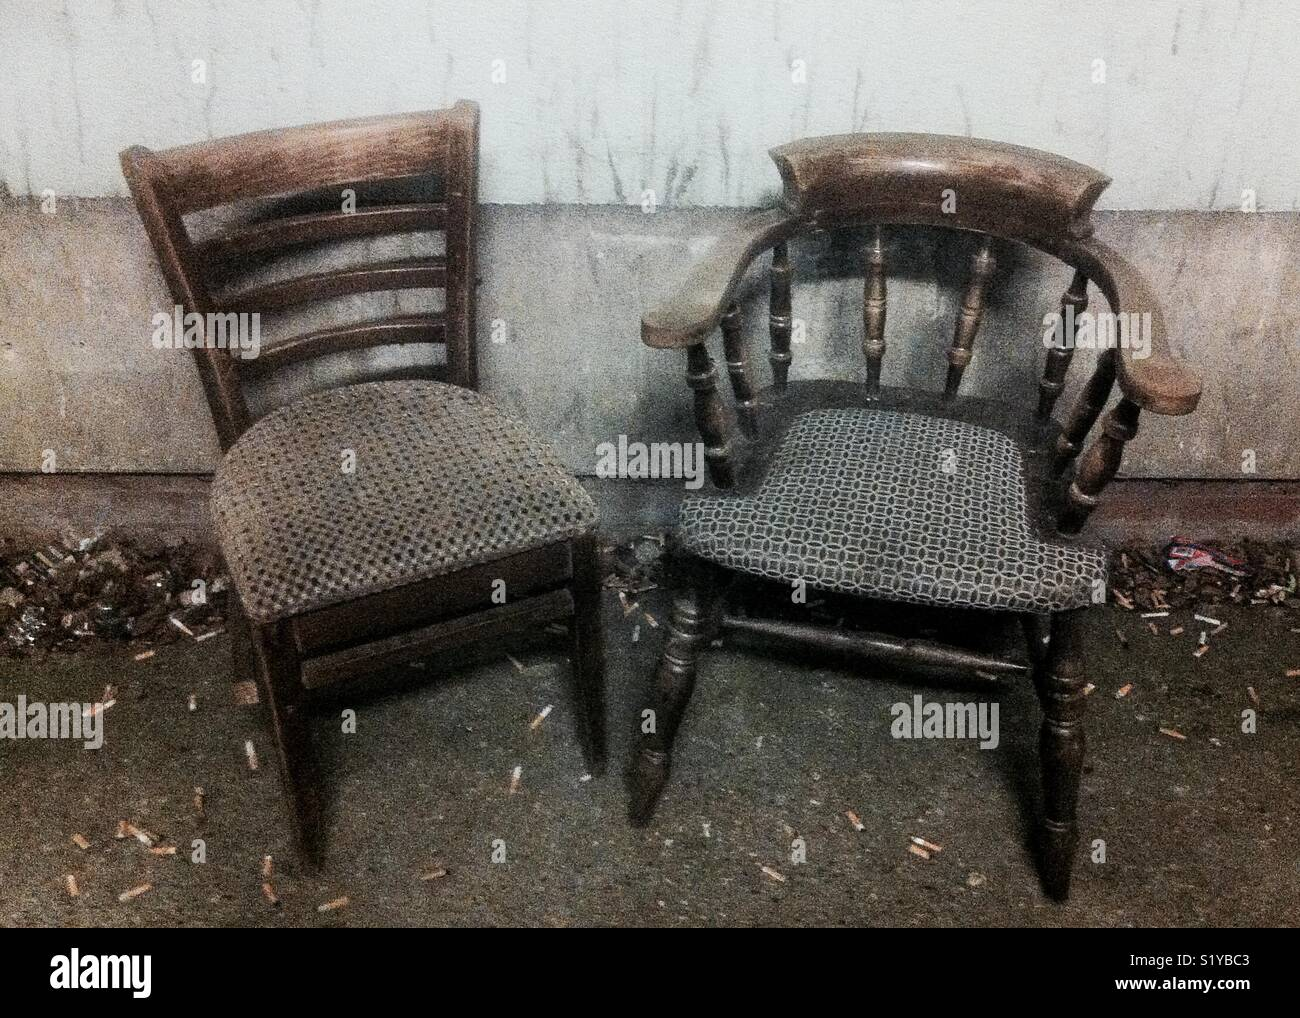 Empty chairs and fag butts in a derelict pub from yesteryear. - Stock Image